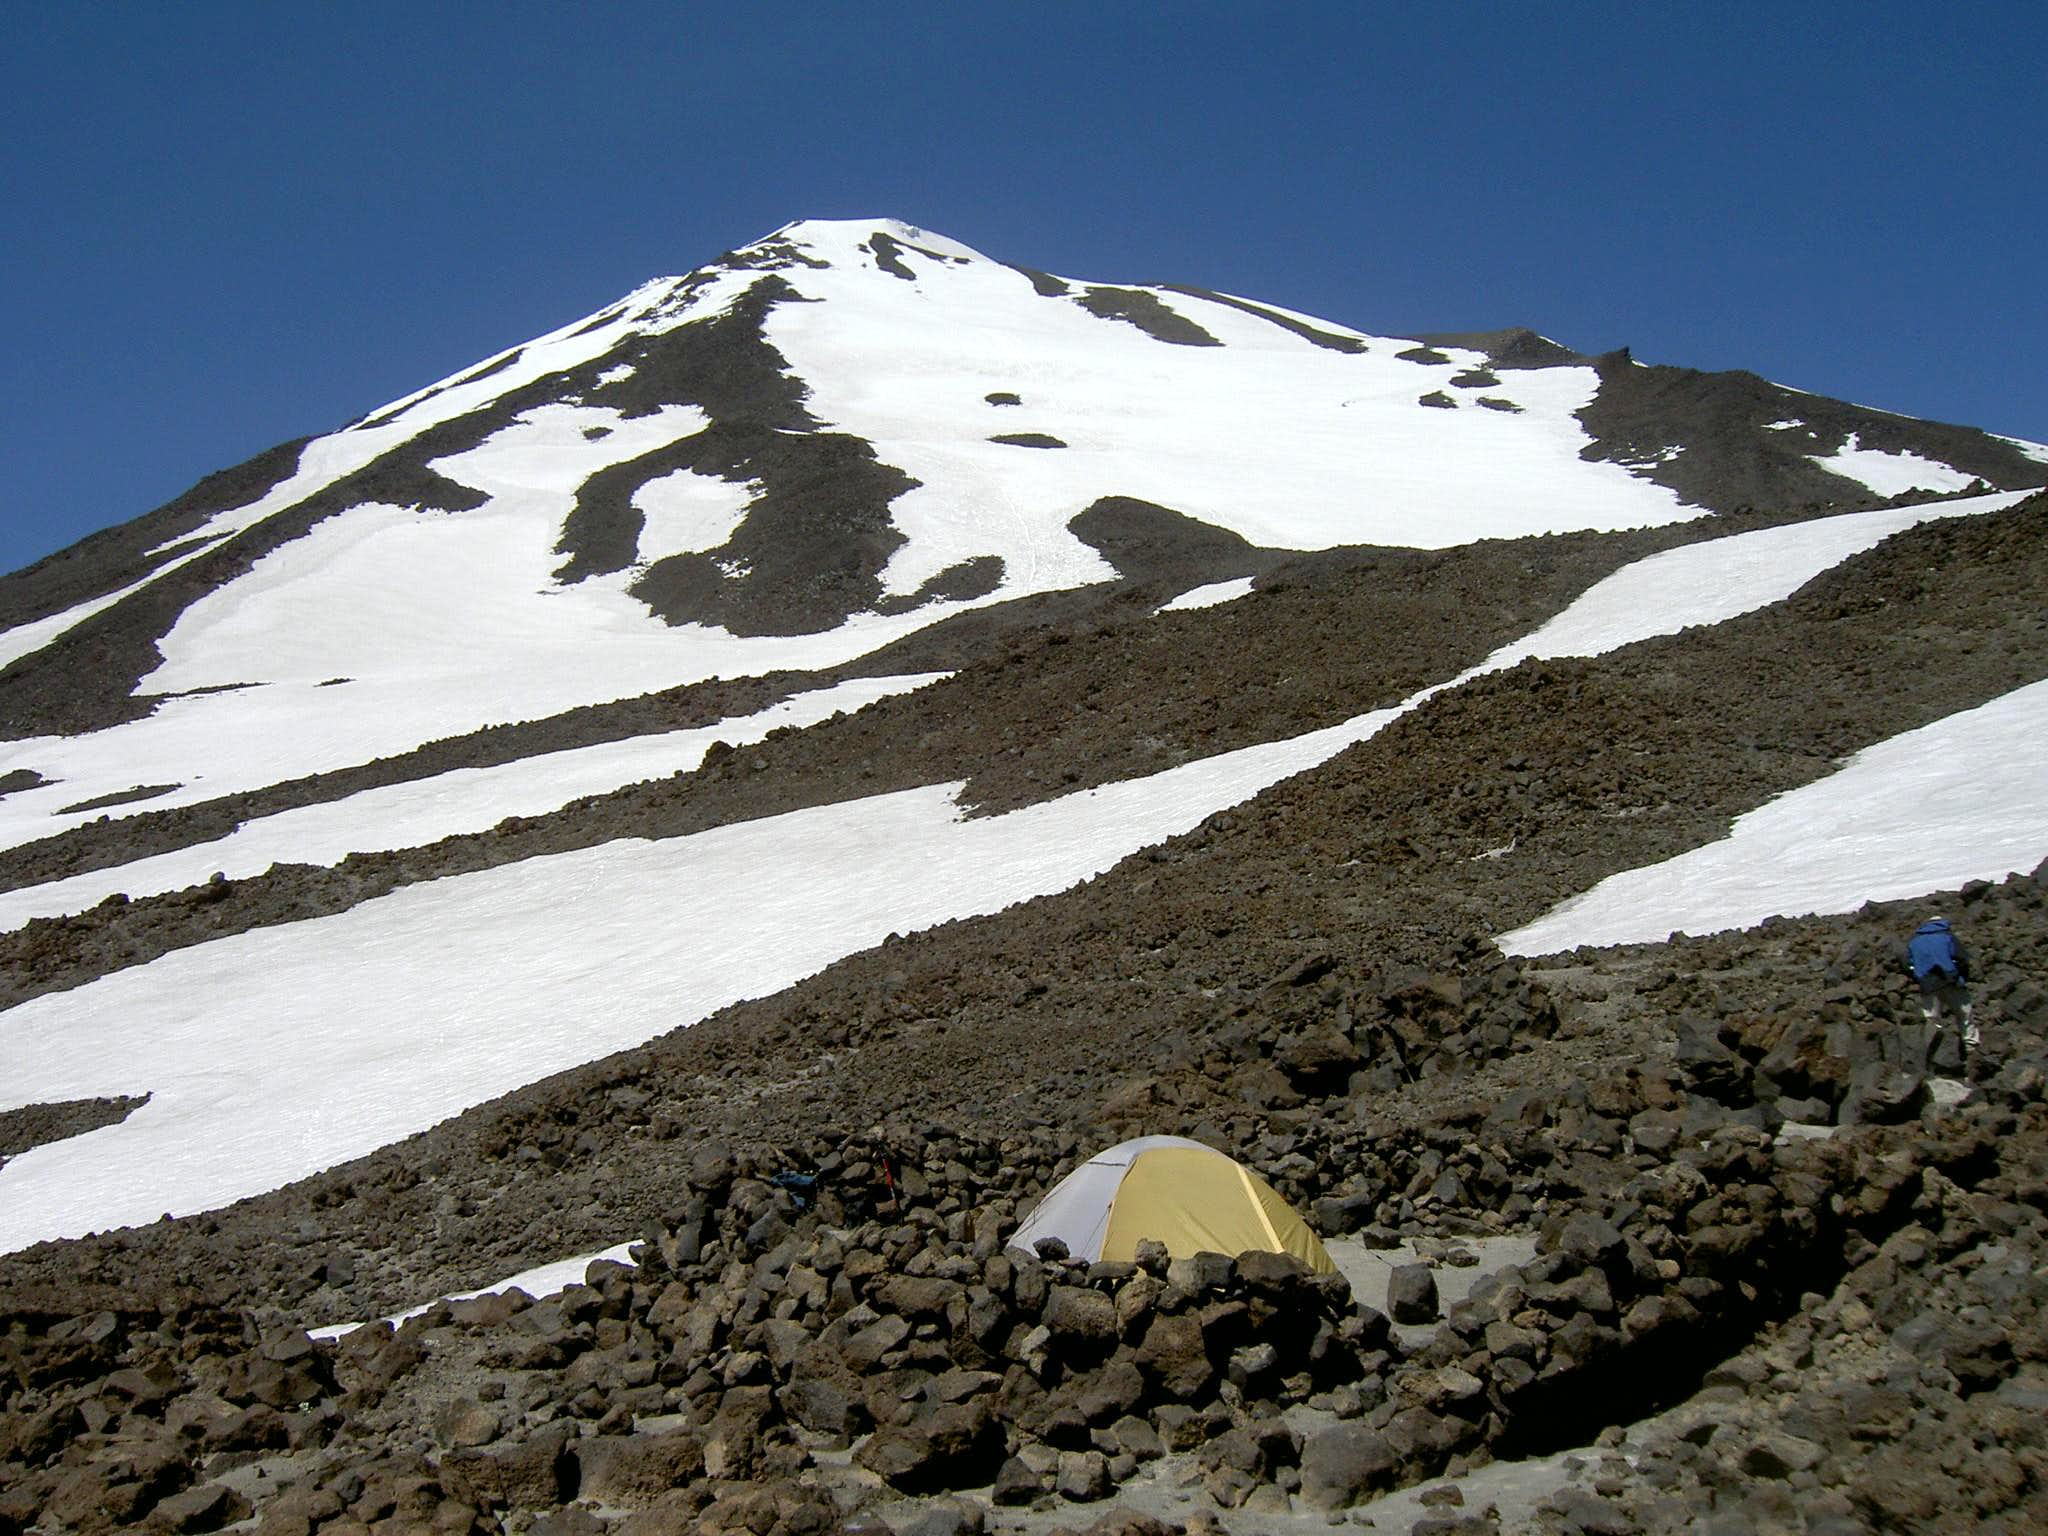 Mt Adams: Humming Birds and Solitude